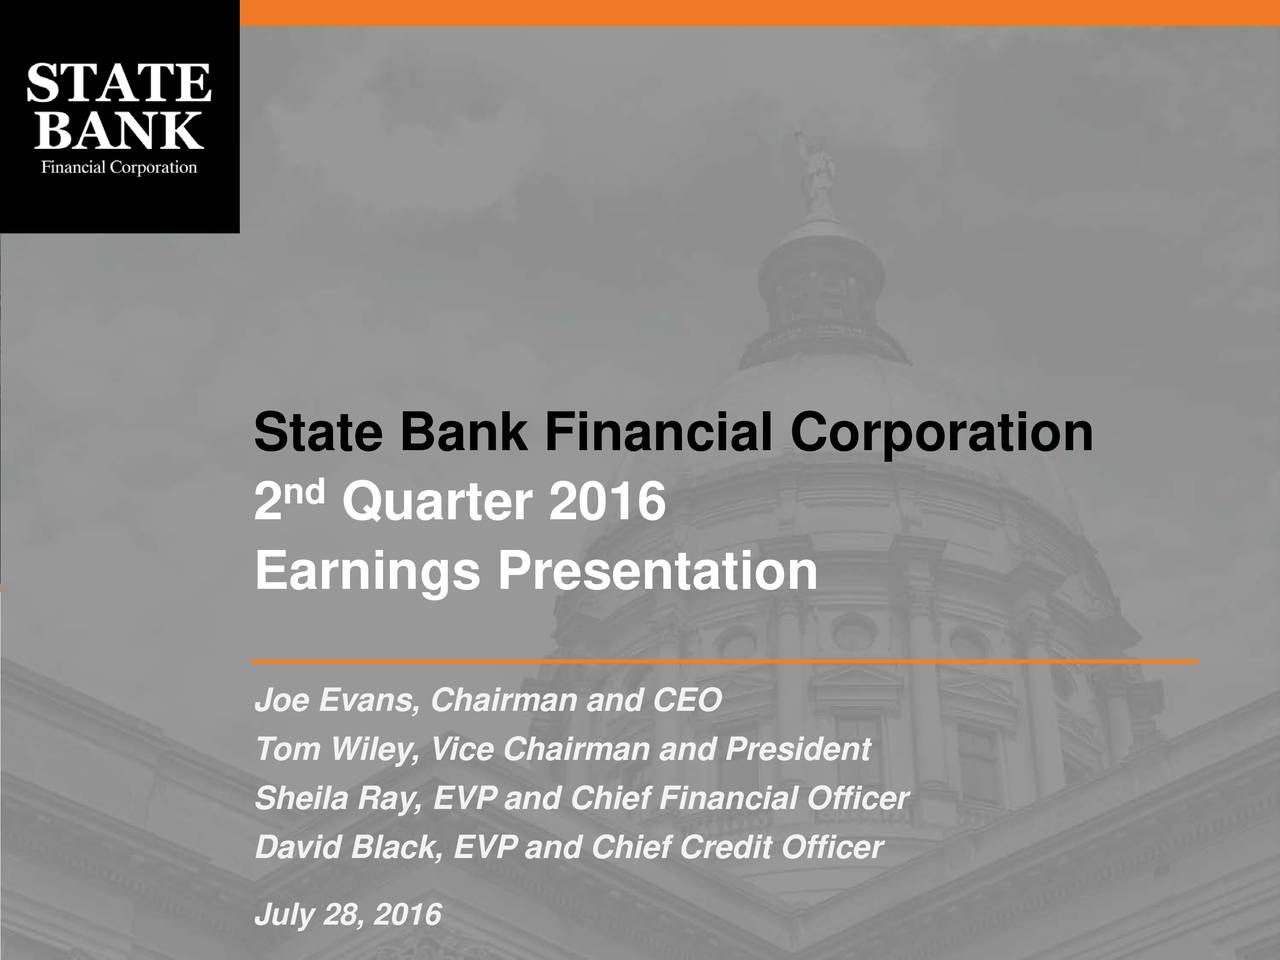 2nd Quarter 2016 Earnings Presentation Joe Evans, Chairman and CEO Tom Wiley, Vice Chairman and President Sheila Ray, EVP and Chief Financial Officer David Black, EVP and Chief Credit Officer July 28, 2016